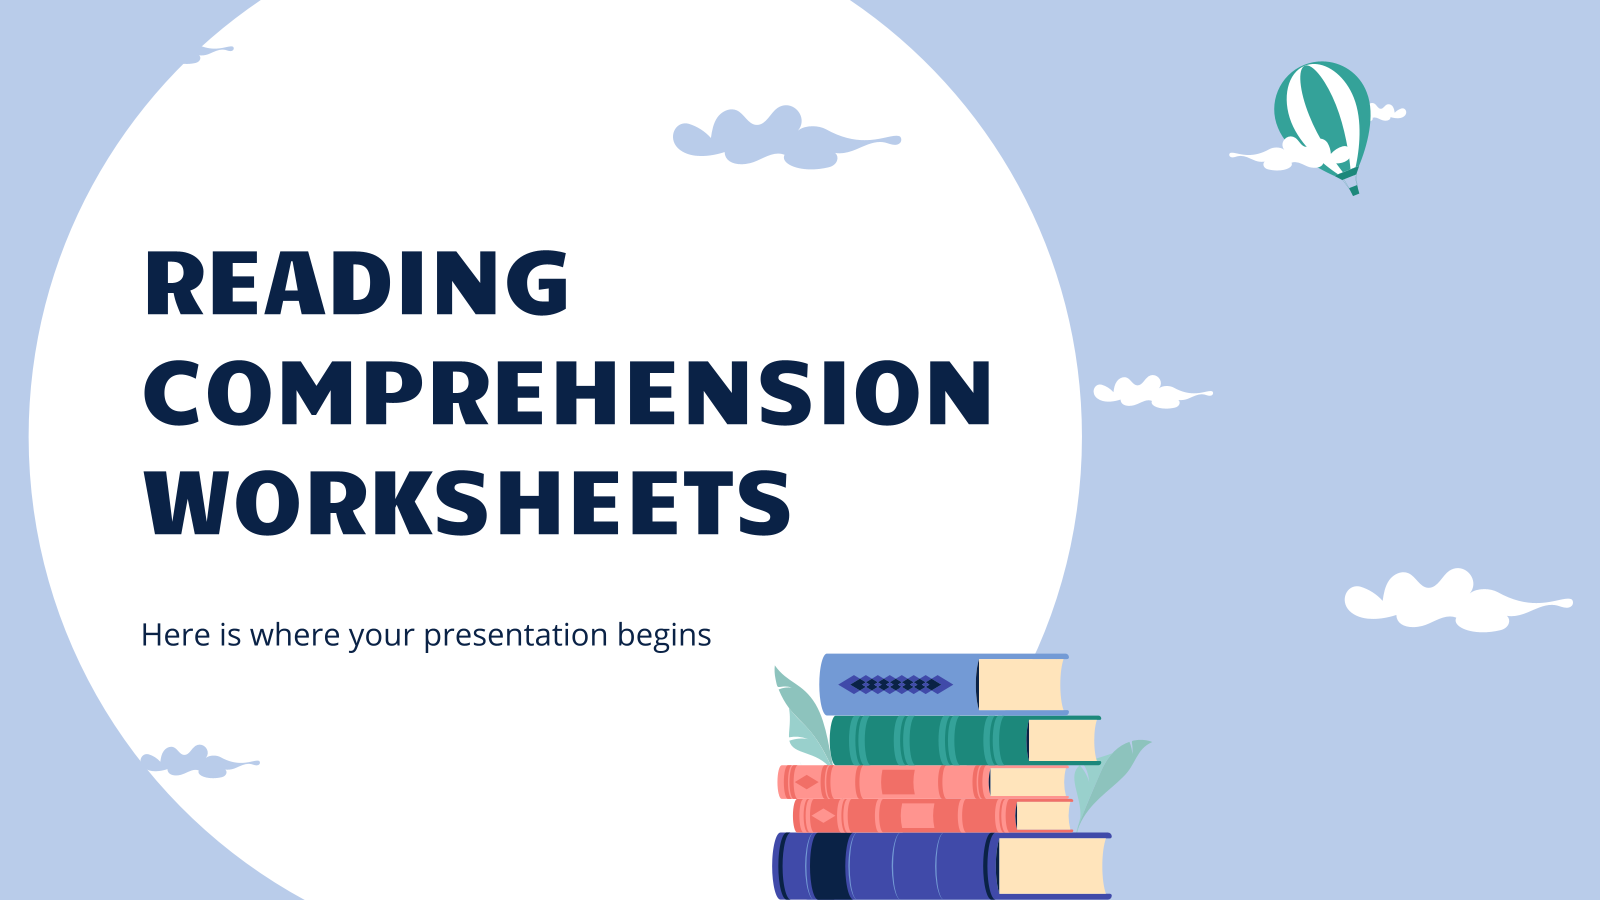 Reading Comprehension Worksheets presentation template